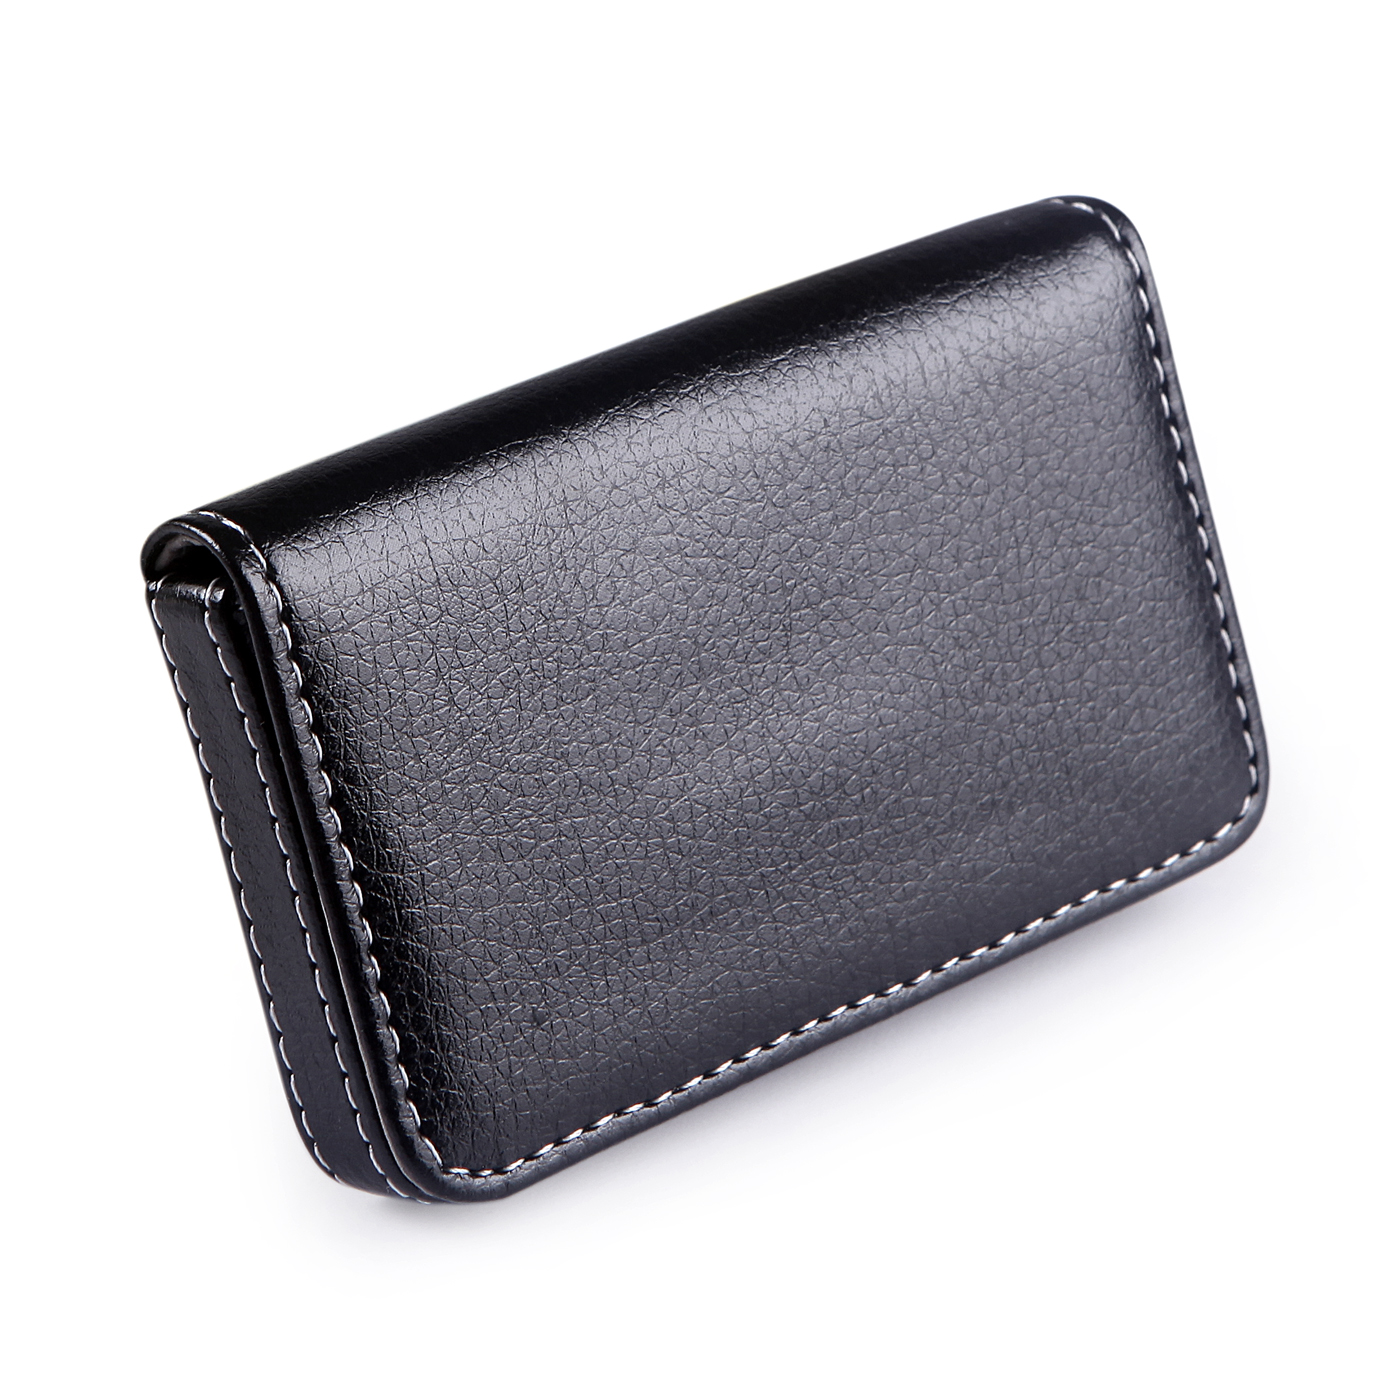 HDE Faux Leather Case Business Card Holder Wallet Organizer with Magnetic Flap (Black)